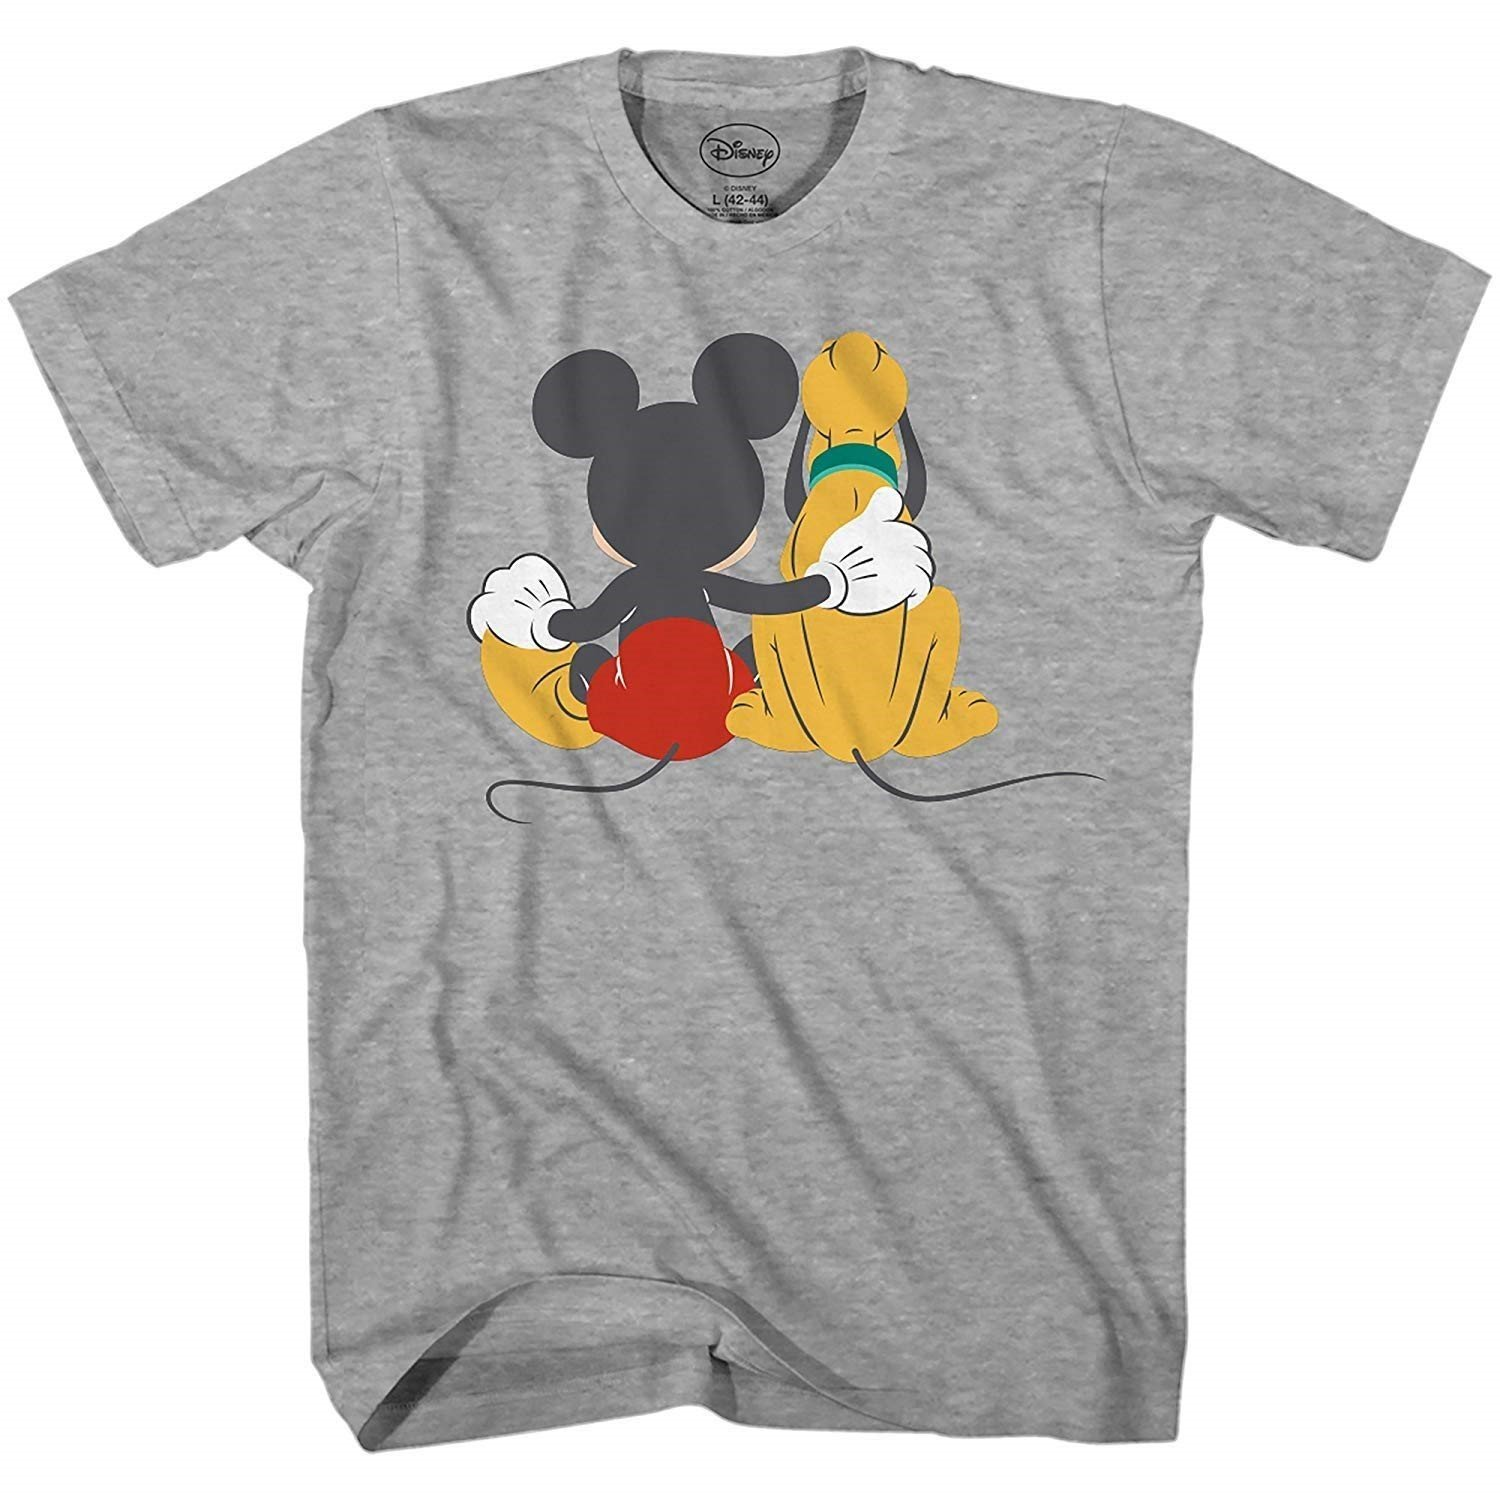 Mickey Mouse & Pluto Back Disneyland Disney World Tee Funny Humor Adult Mens Graphic T-shirt Apparel